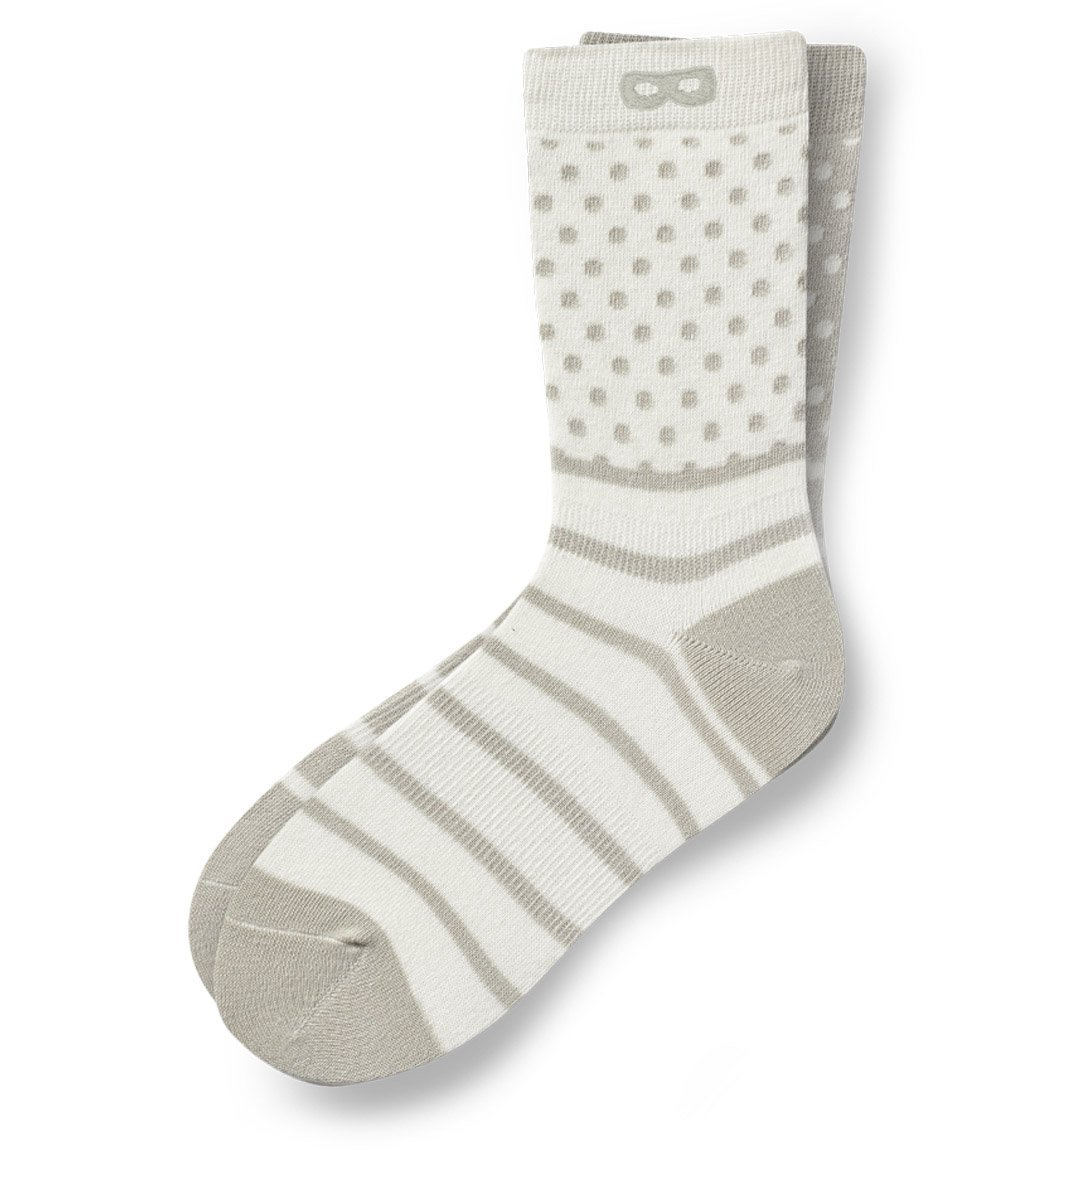 2 Shades of Grey Women's Crew Socks